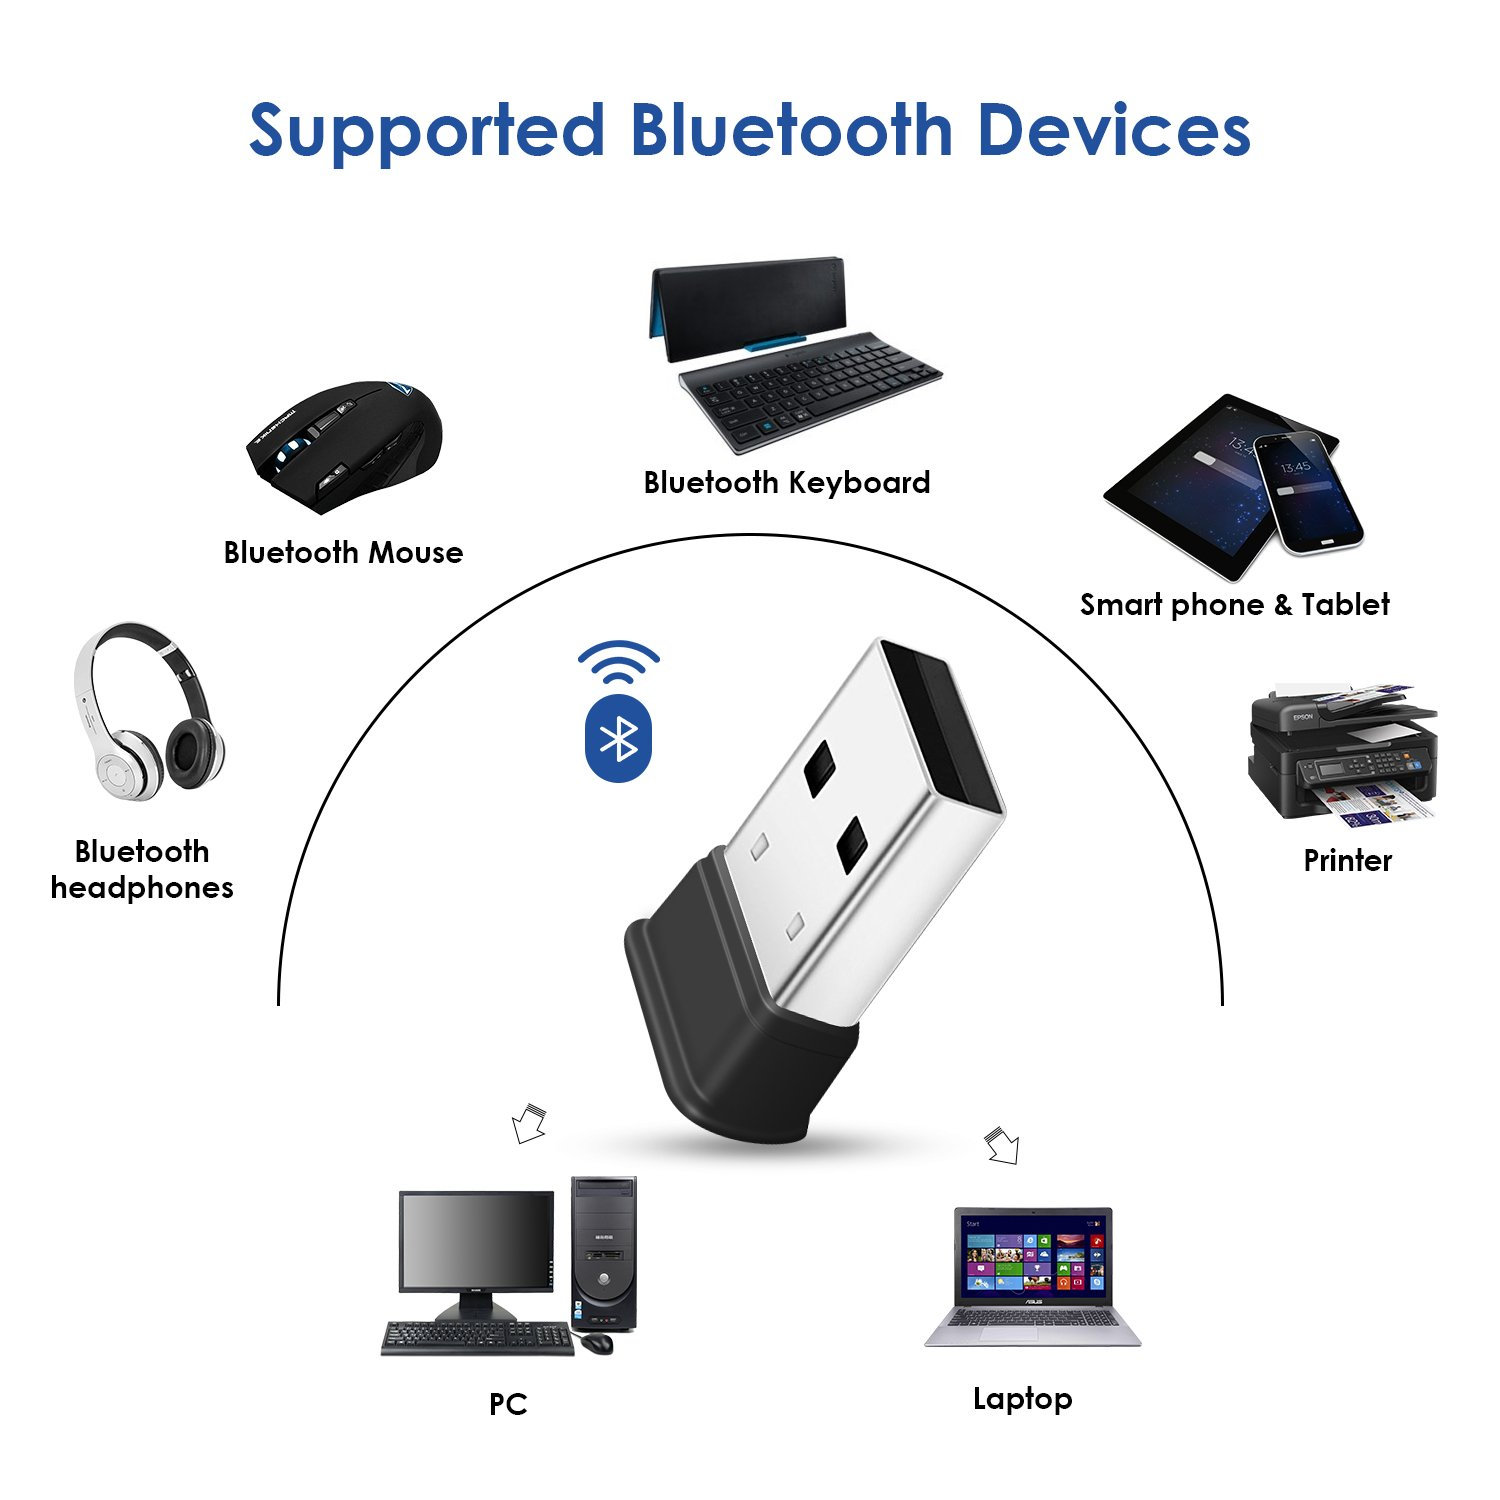 Bluetooth USB Adapter, Bluetooth 4.0 USB Dongle, Low Energy for PC, Wireless Bluetooth Dongle for PC Laptop Desktop Computer, Compatible with Windows 10, 8.1, 8, 7, Vista, XP, Linux and Raspberry PI by HIGHEVER (Image #2)